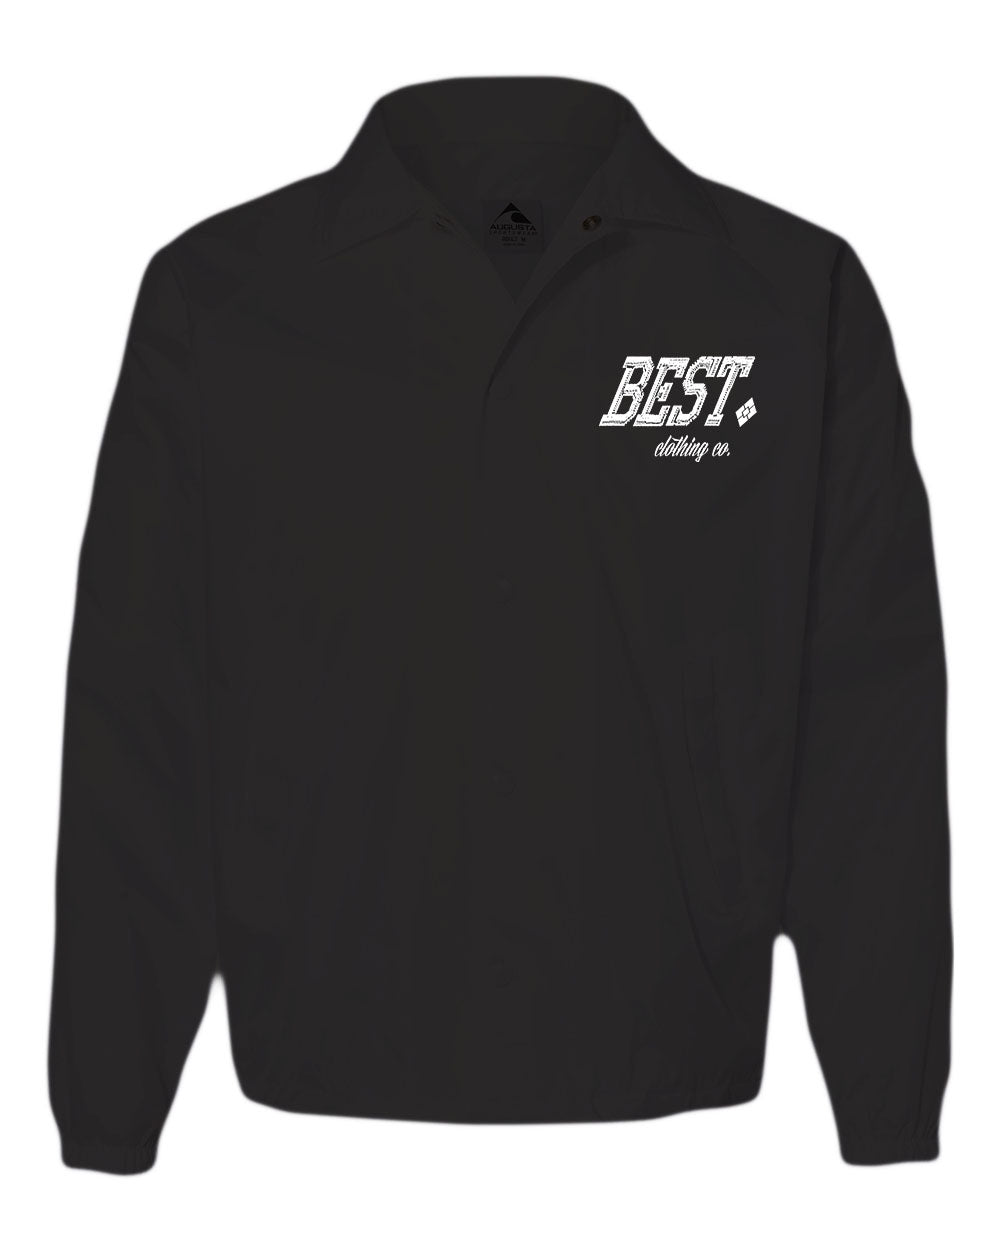 BCC Black Windbreaker Jacket